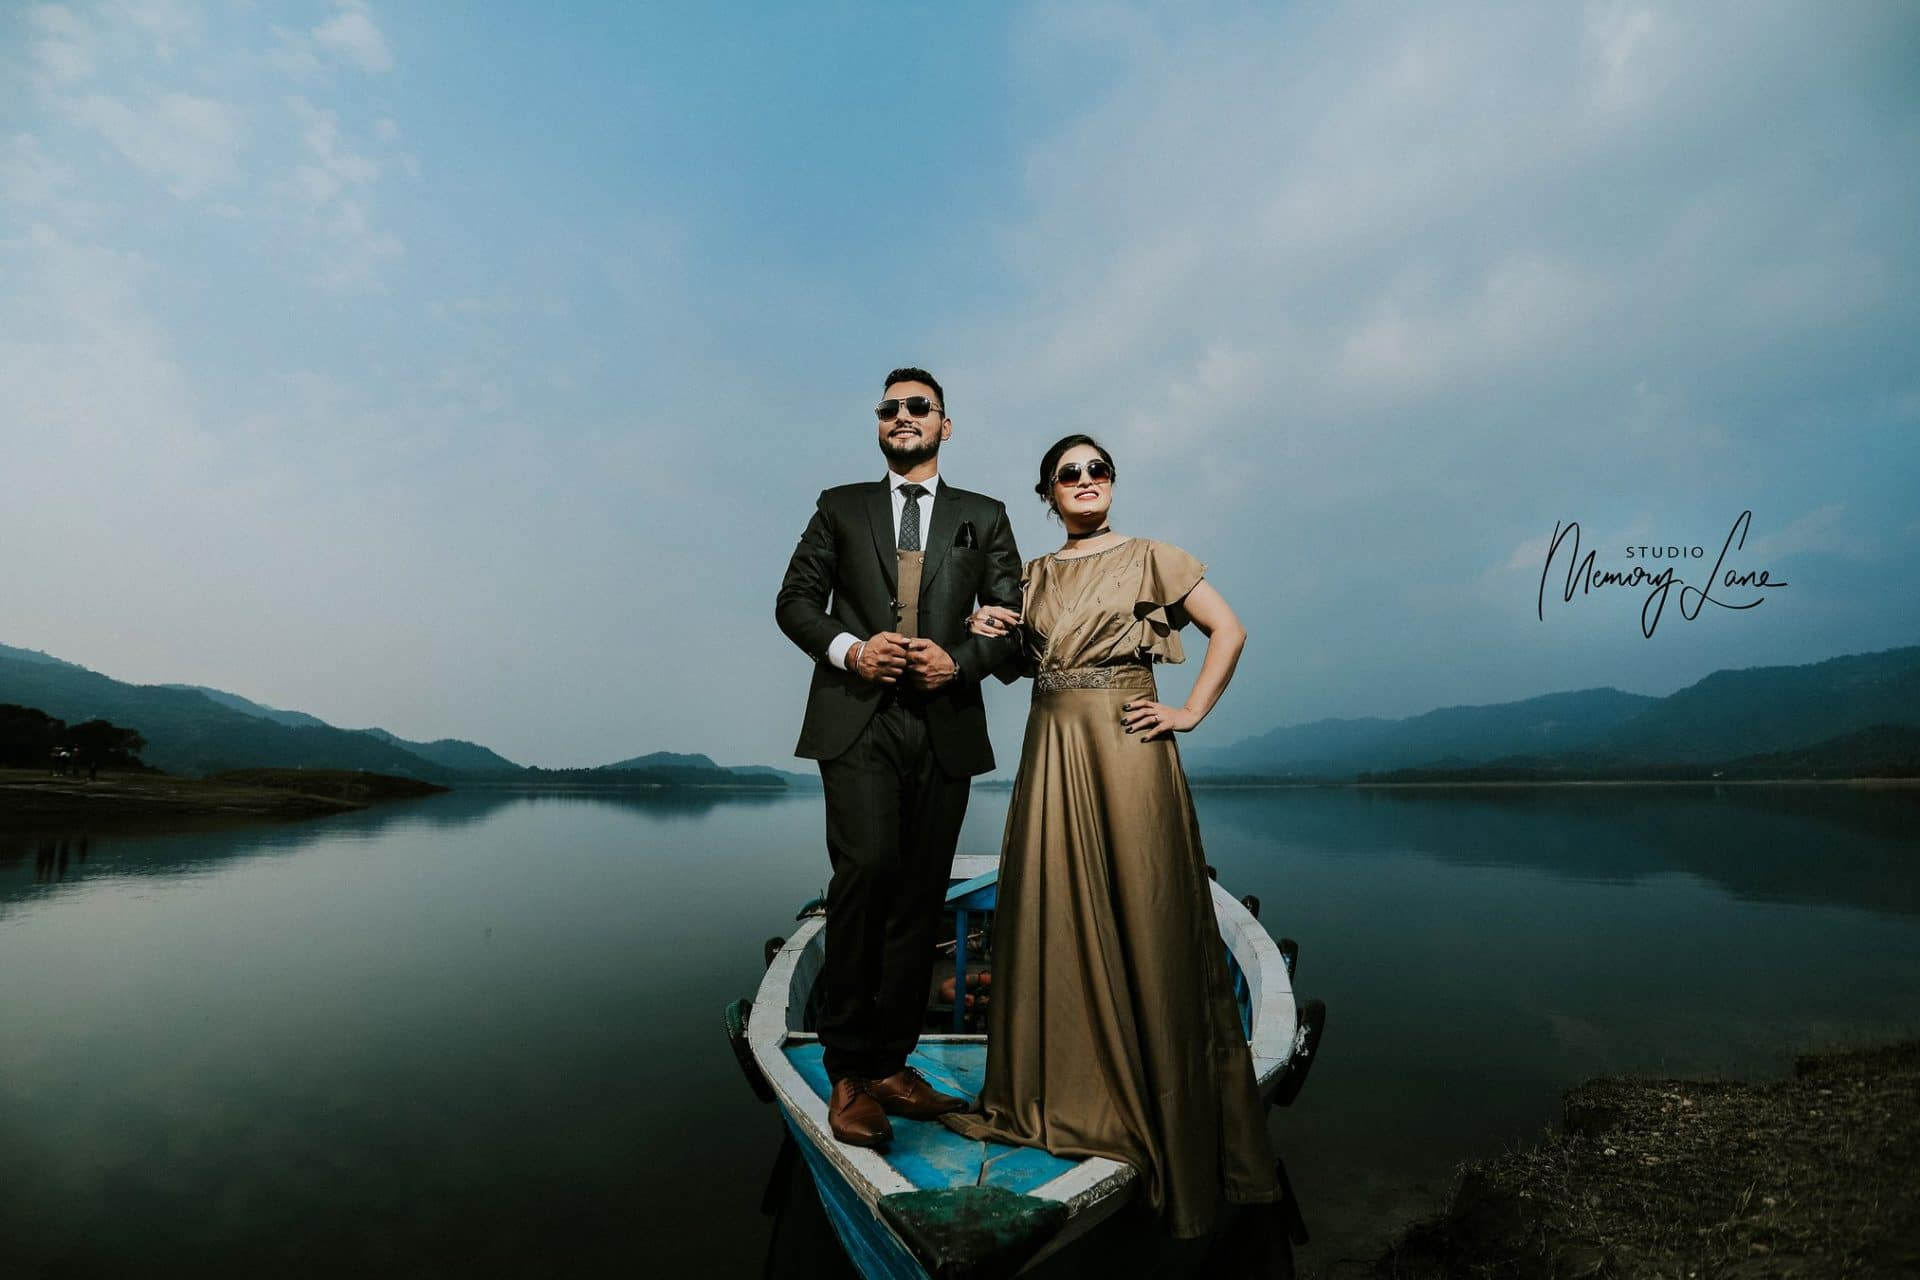 Pre-wedding photo-shoot Ferozepur!